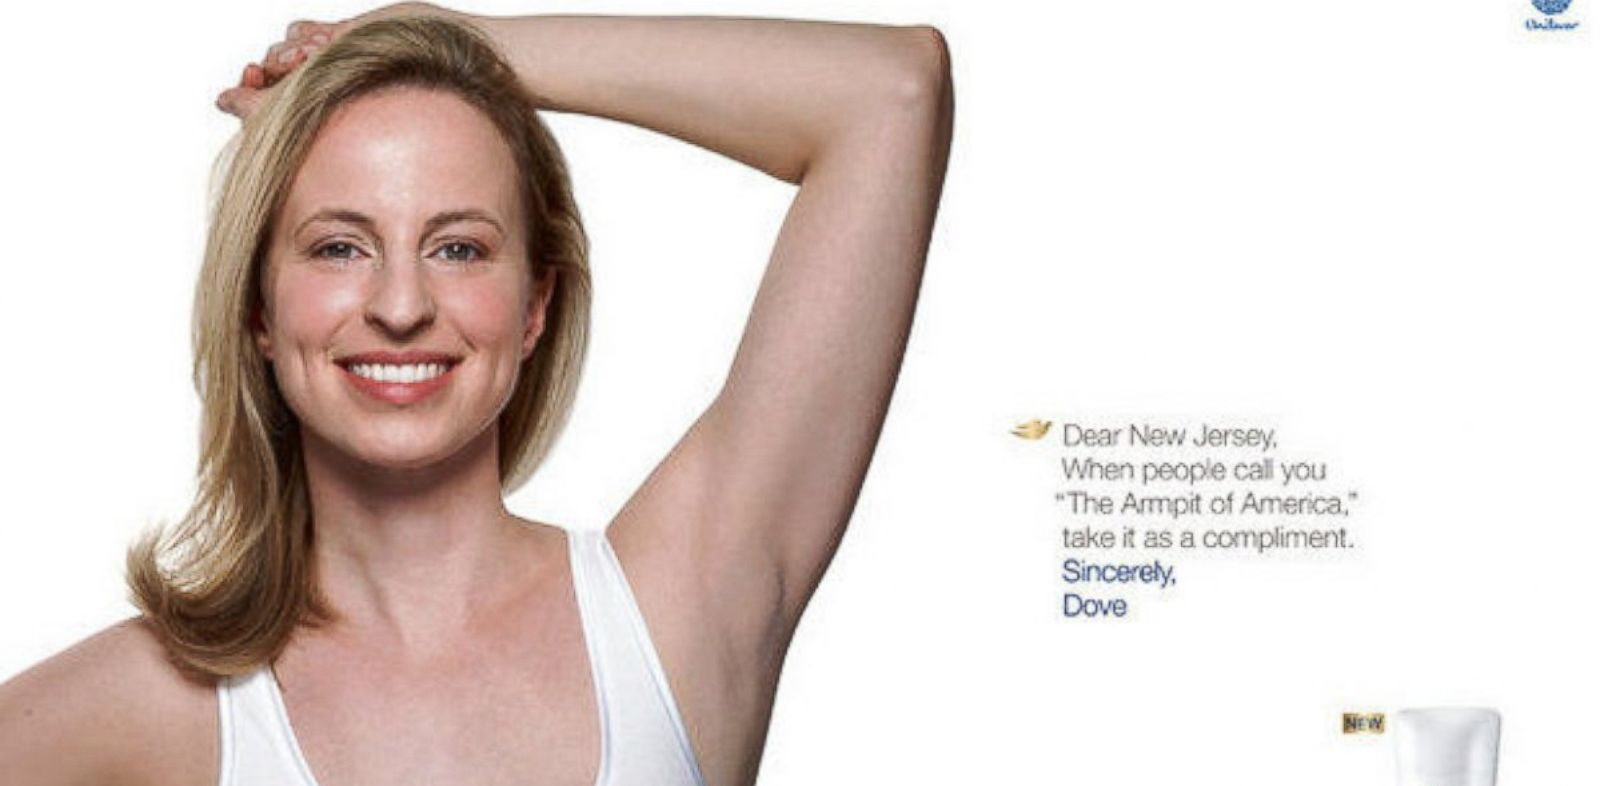 PHOTO: Dove drops Armpit of America billboard in N.J.